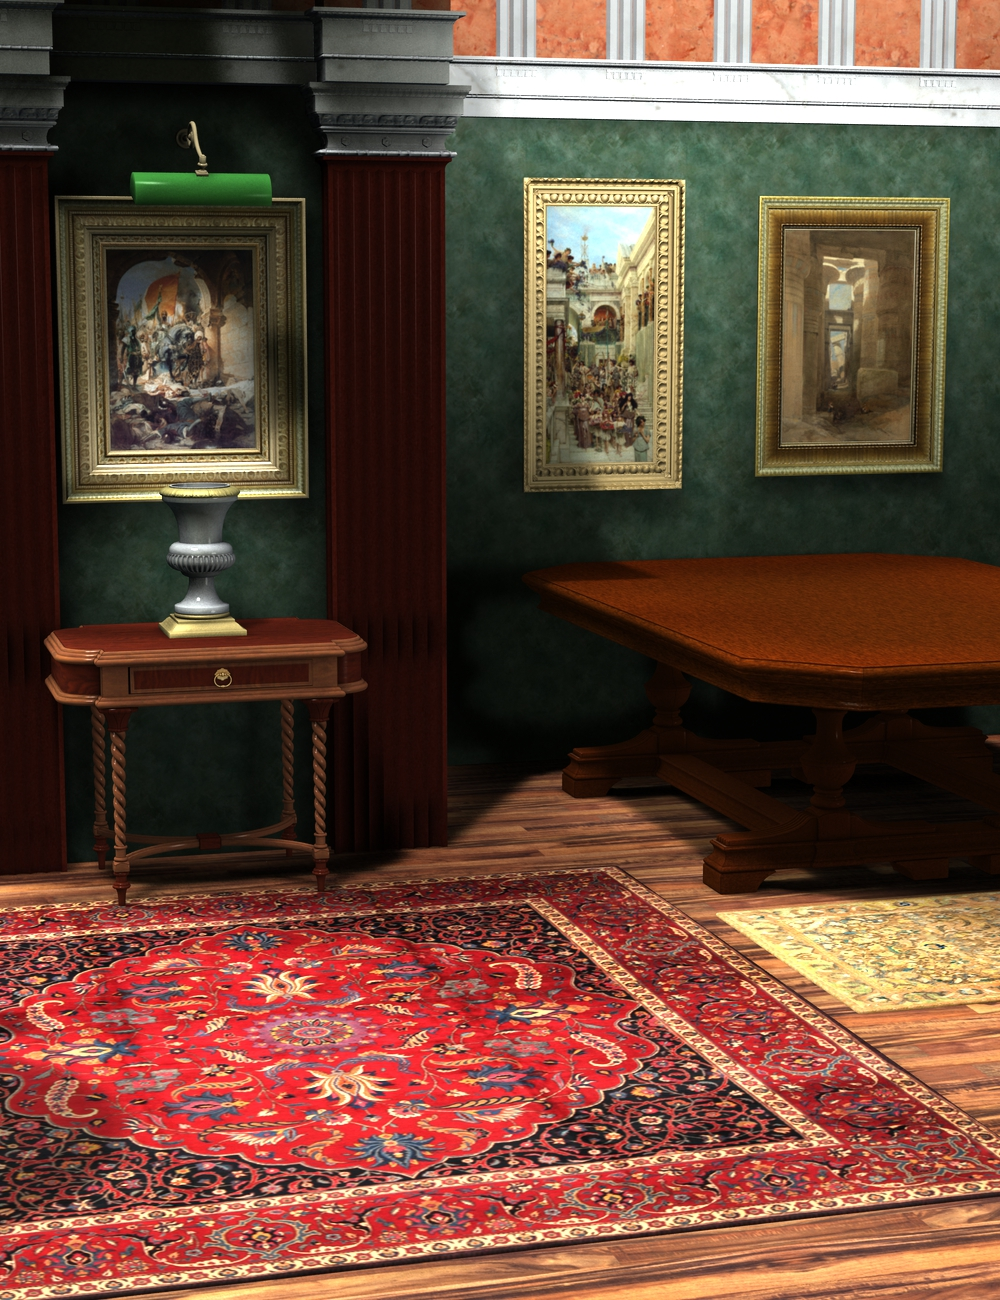 Vaulted Hall Accessories by: KRAIG, 3D Models by Daz 3D